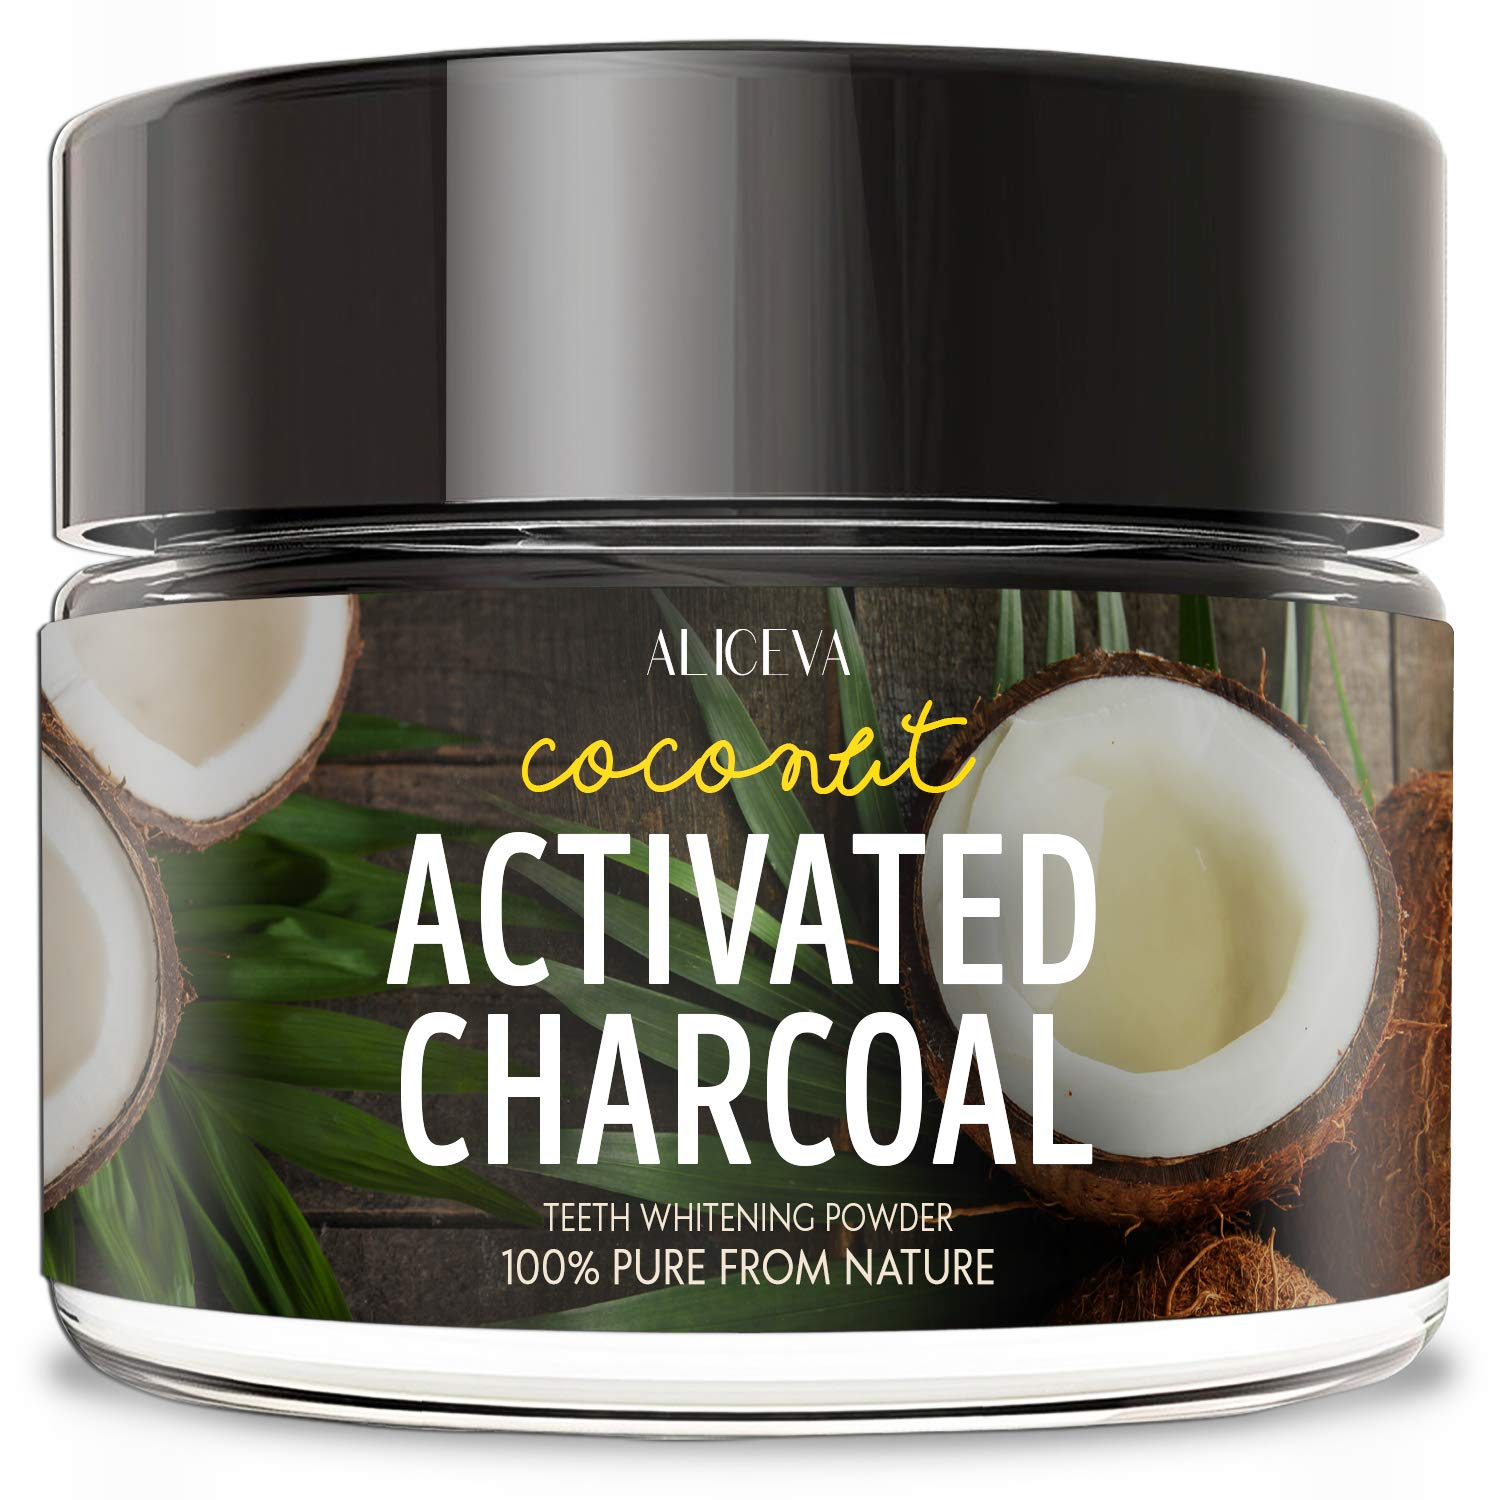 Aliceva Teeth Whitening Activated Charcoal Powder with Xylitol - 2.2 oz Food Grade Formula from Organic Coconut Shell - Spearmint Flavor - Naturally Teeth Whitener Tooth Stain Remover - 60ML